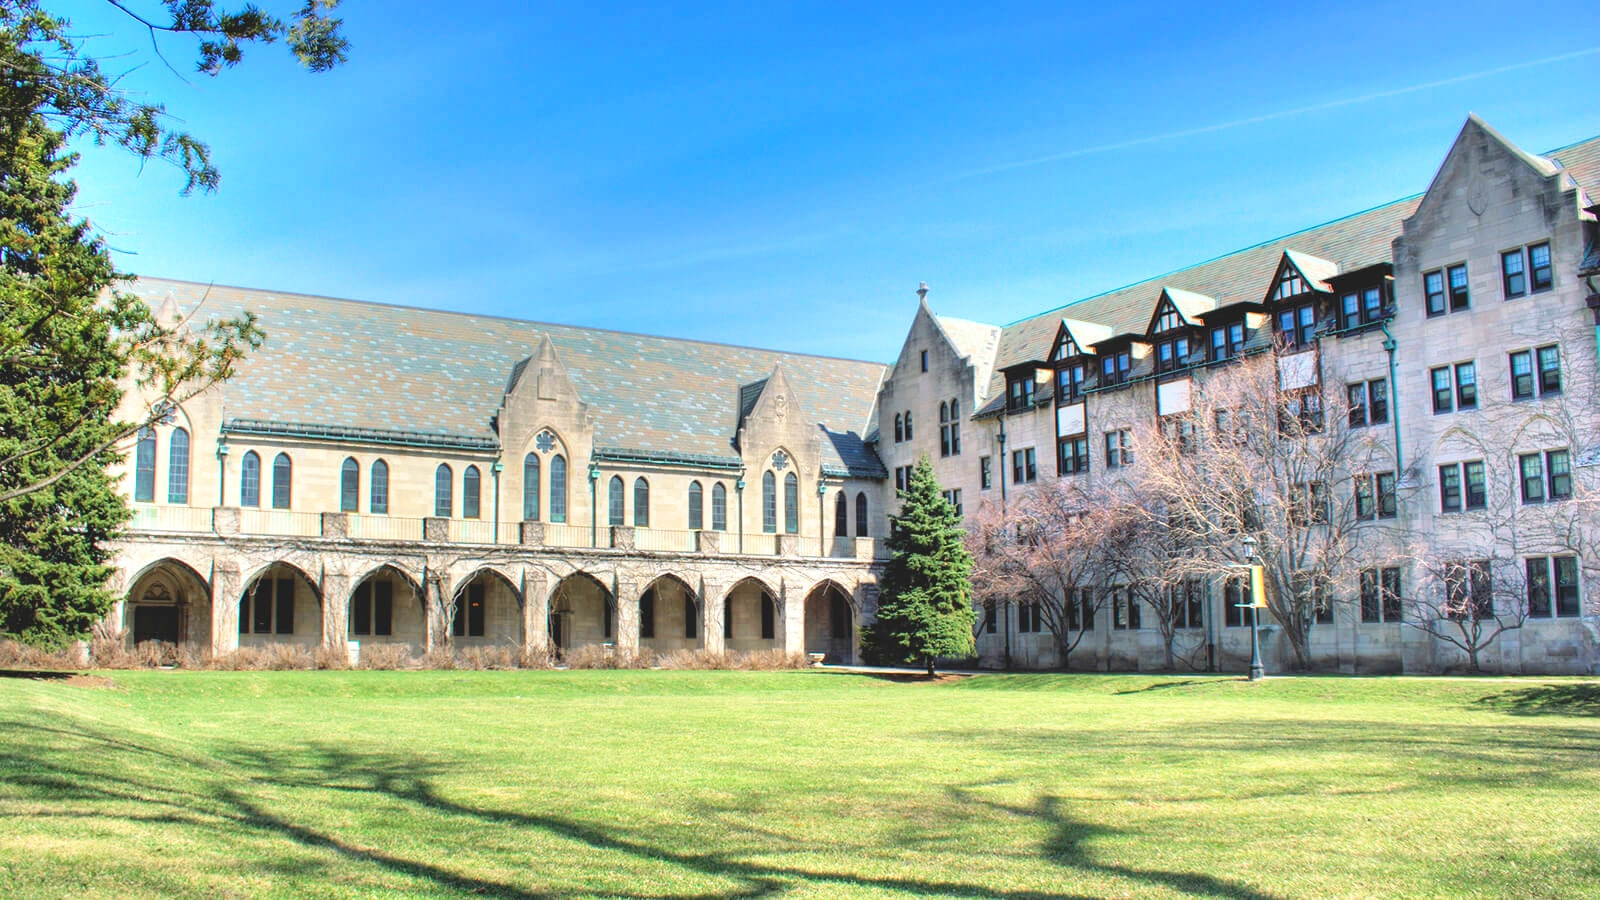 Dominican University College Fire Protection System